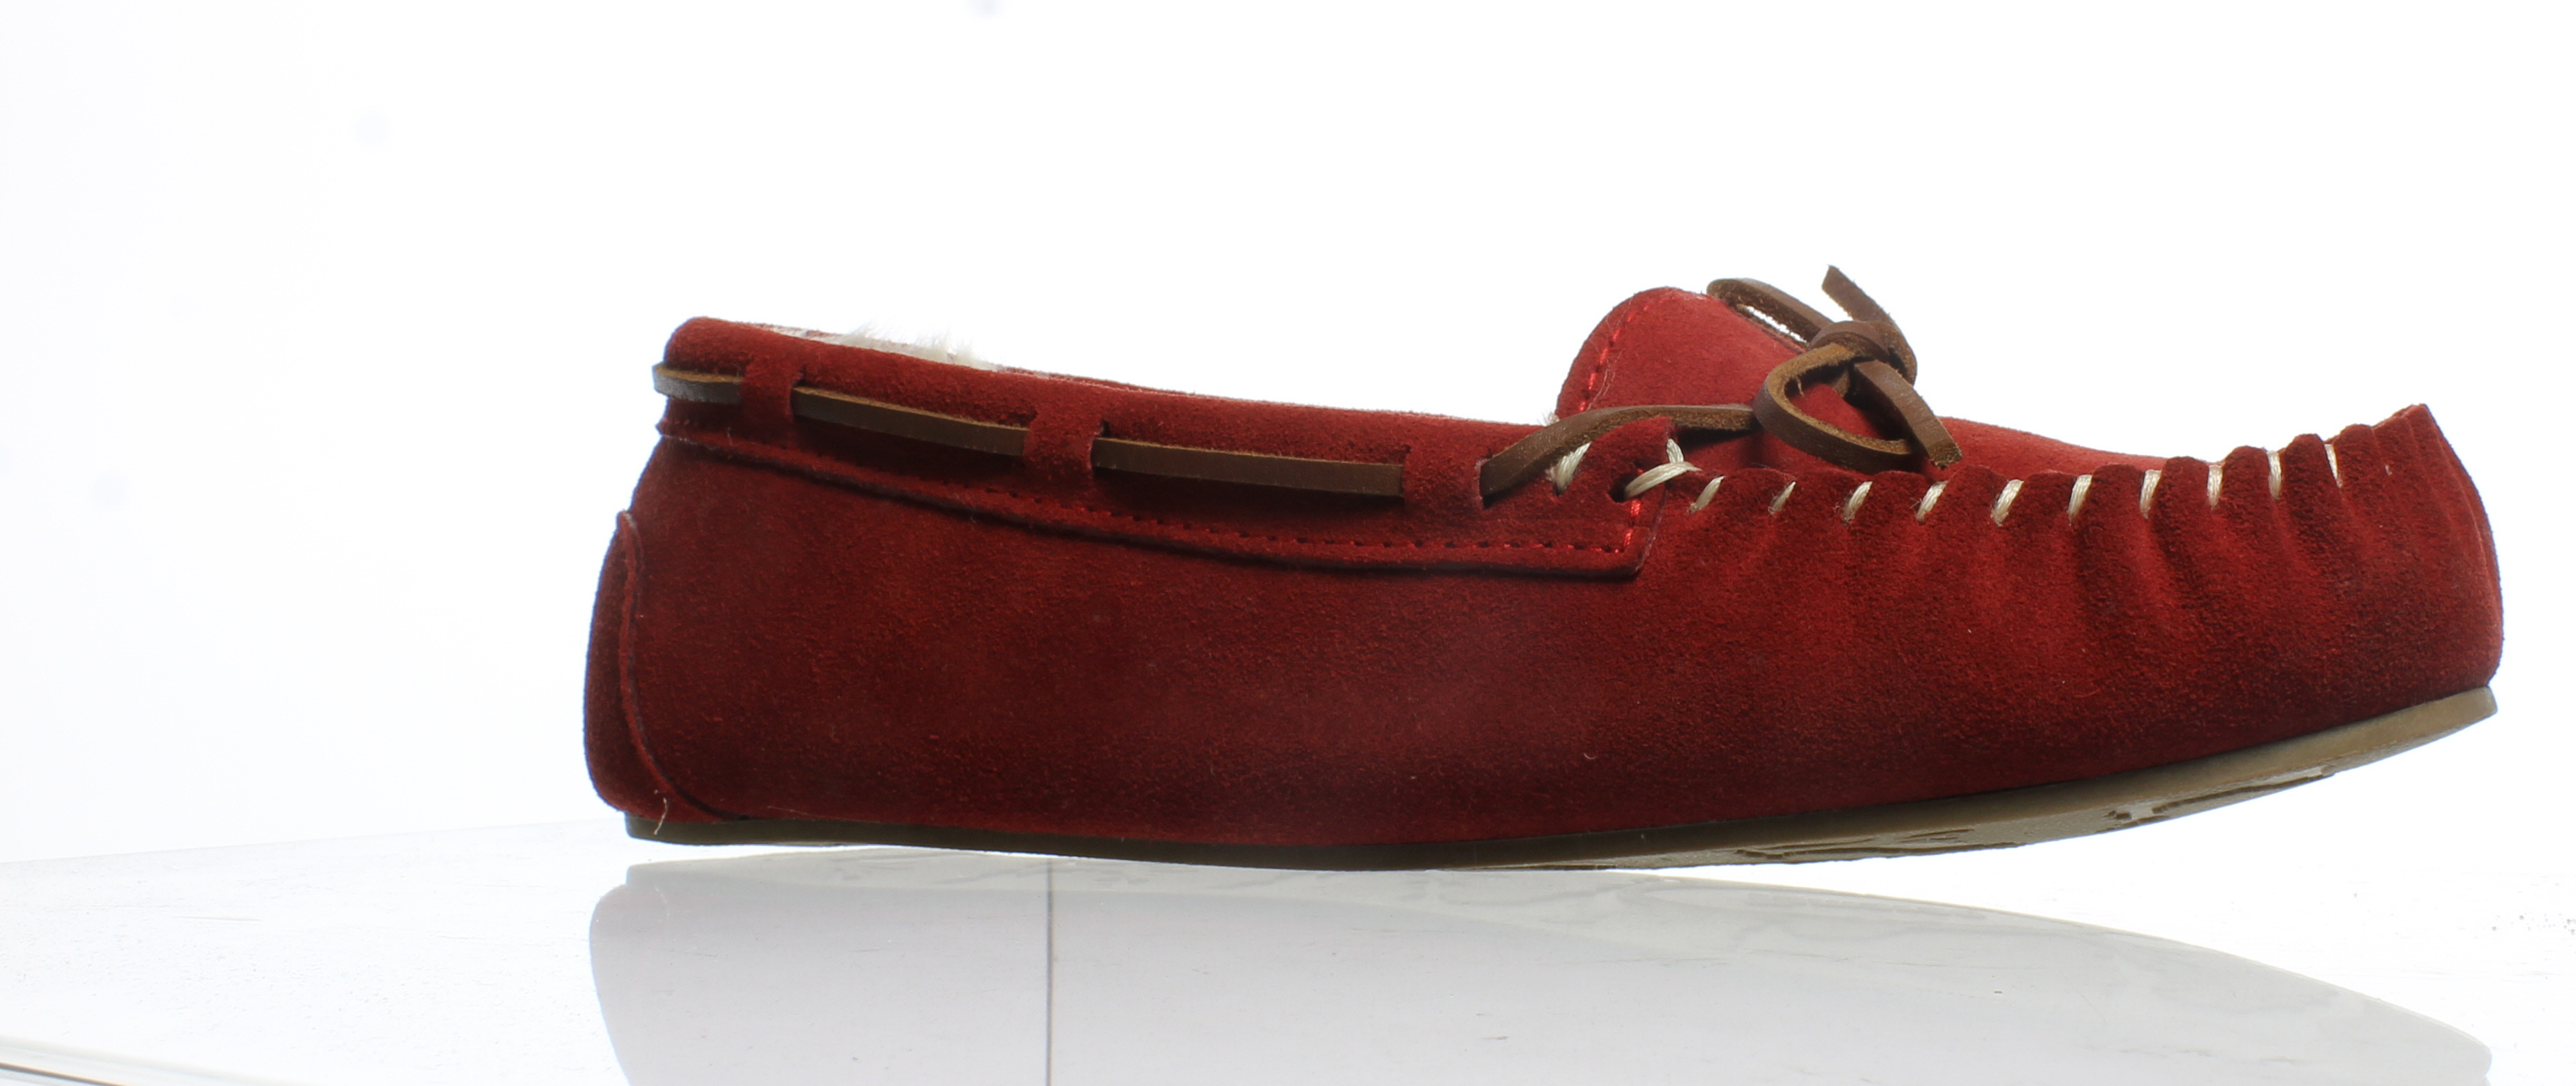 6fb5993e33ee Details about Tamarac by Slippers International Womens Molly Red Mule  Slippers Size 10 (92068)